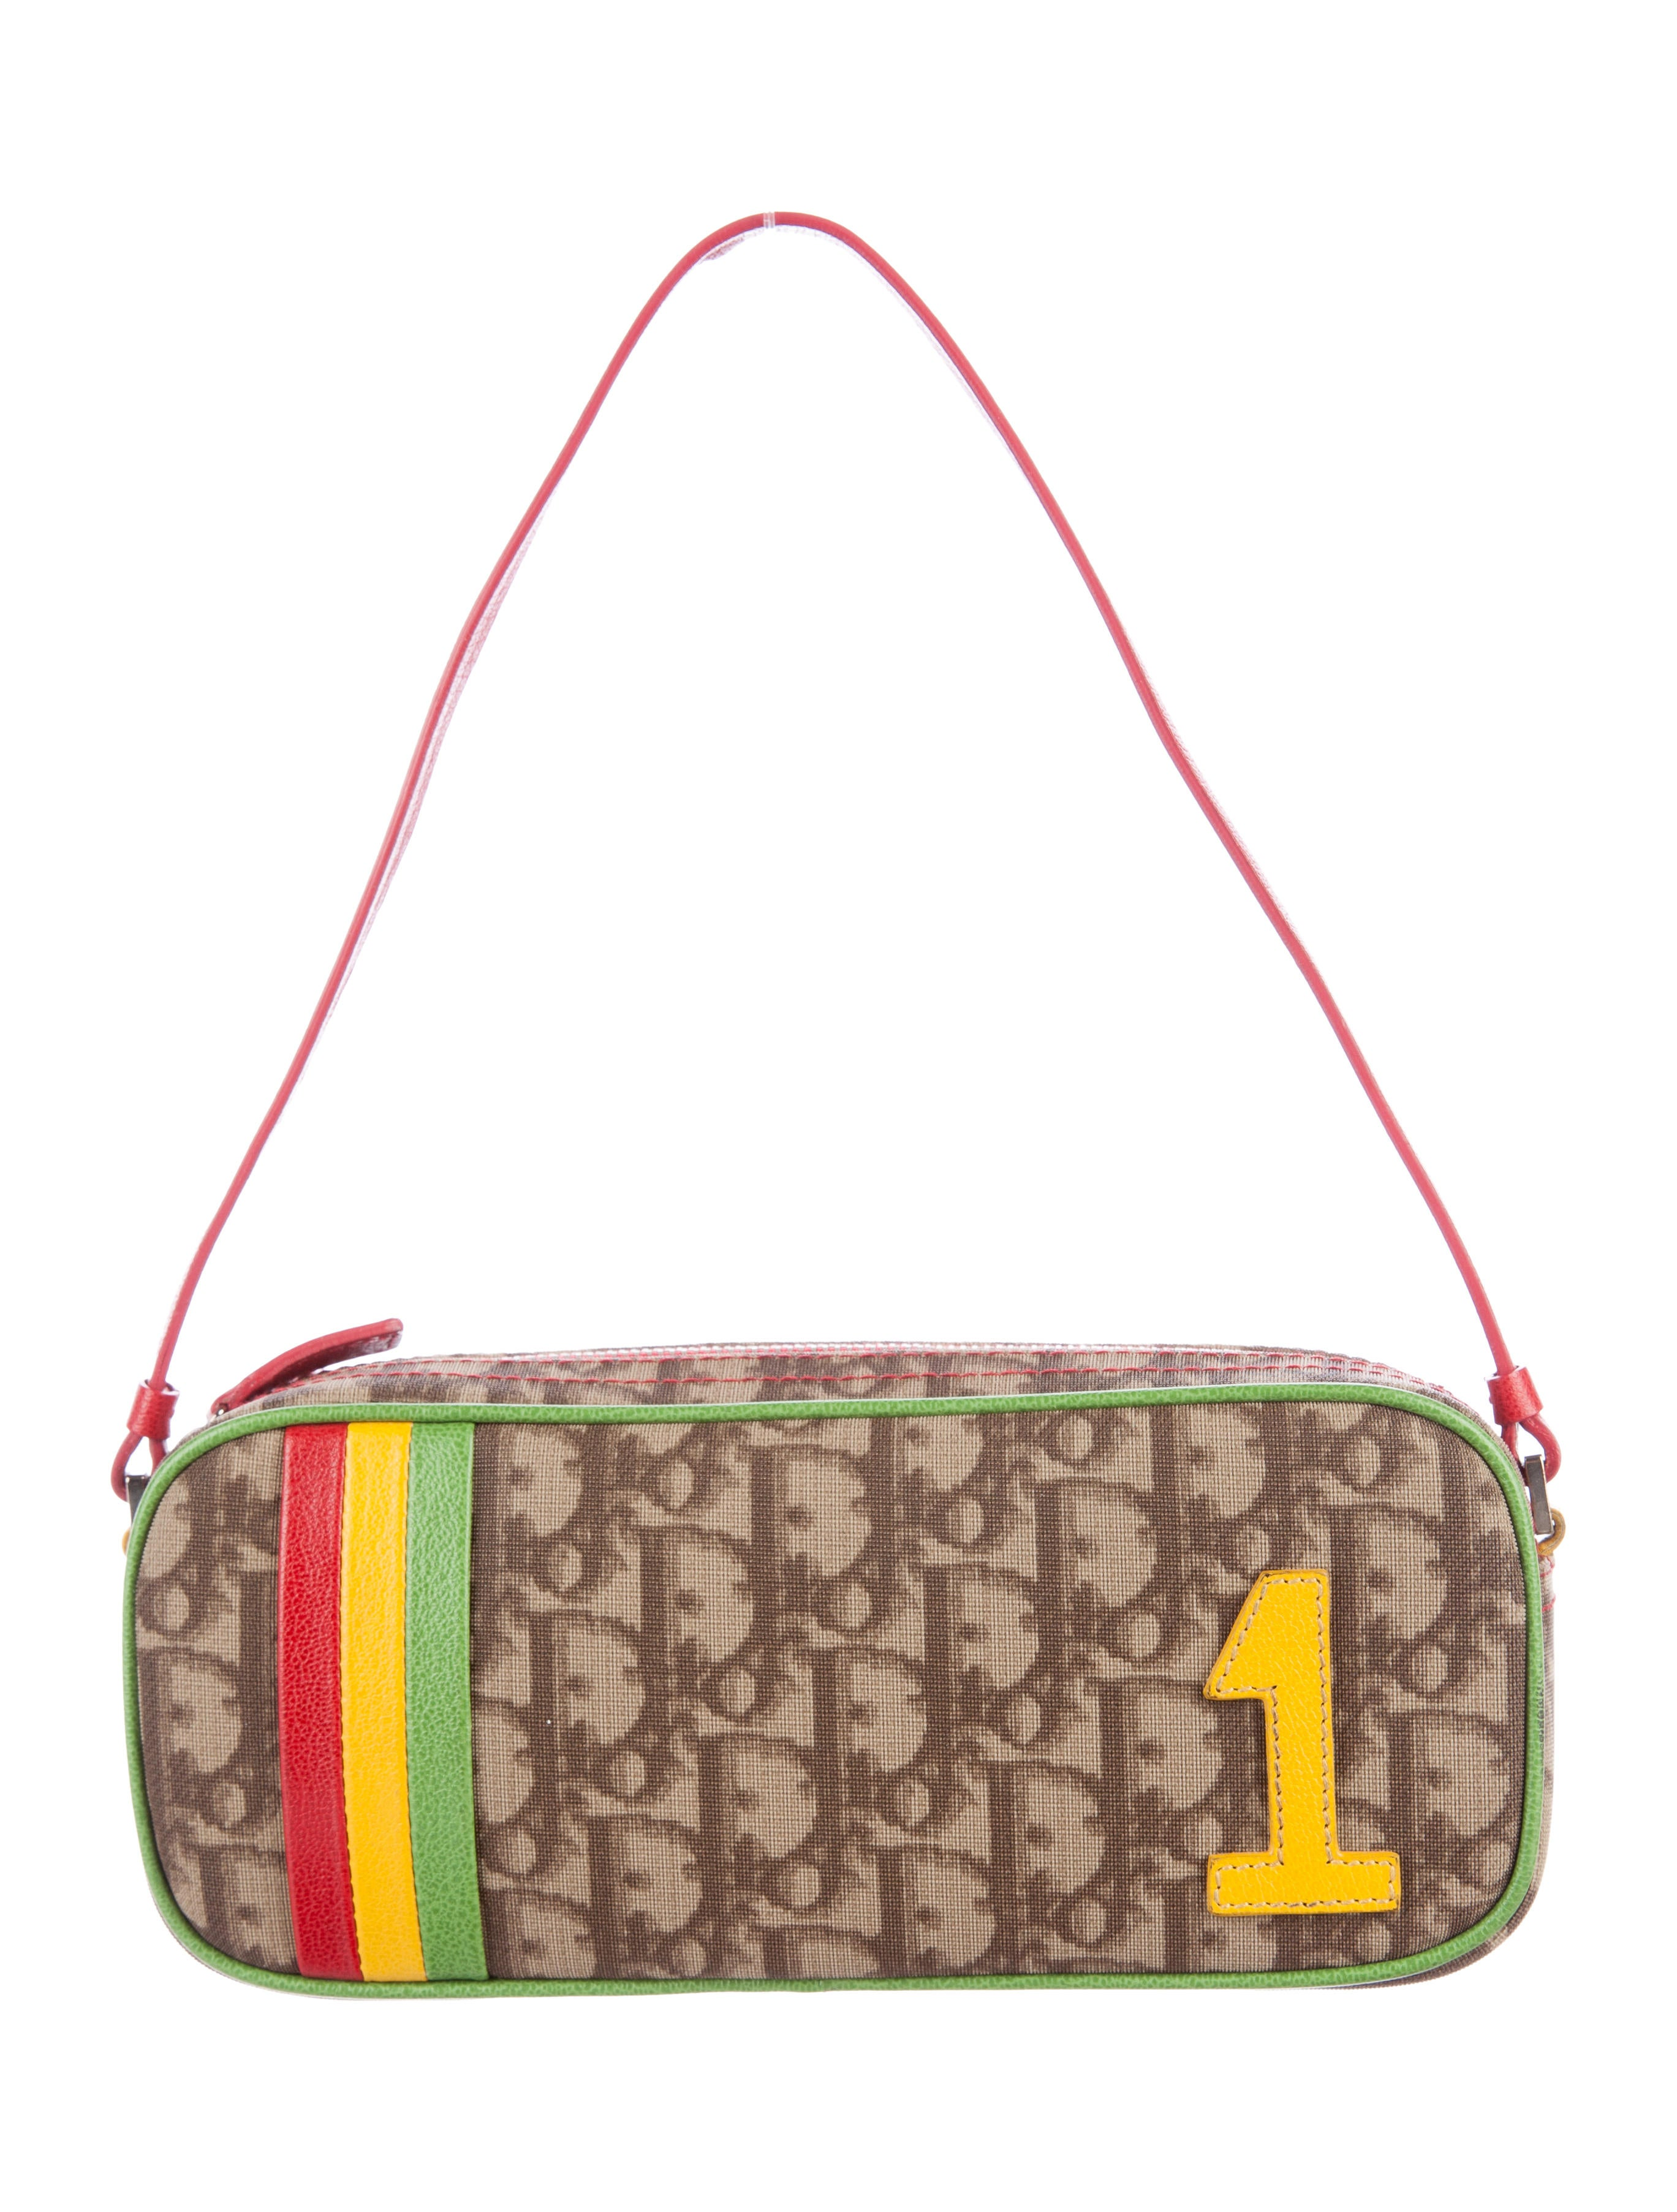 6dfbd53695d9 Christian Dior Oblique Mini Rasta Trotter Bag - Handbags - CHR58236 ...